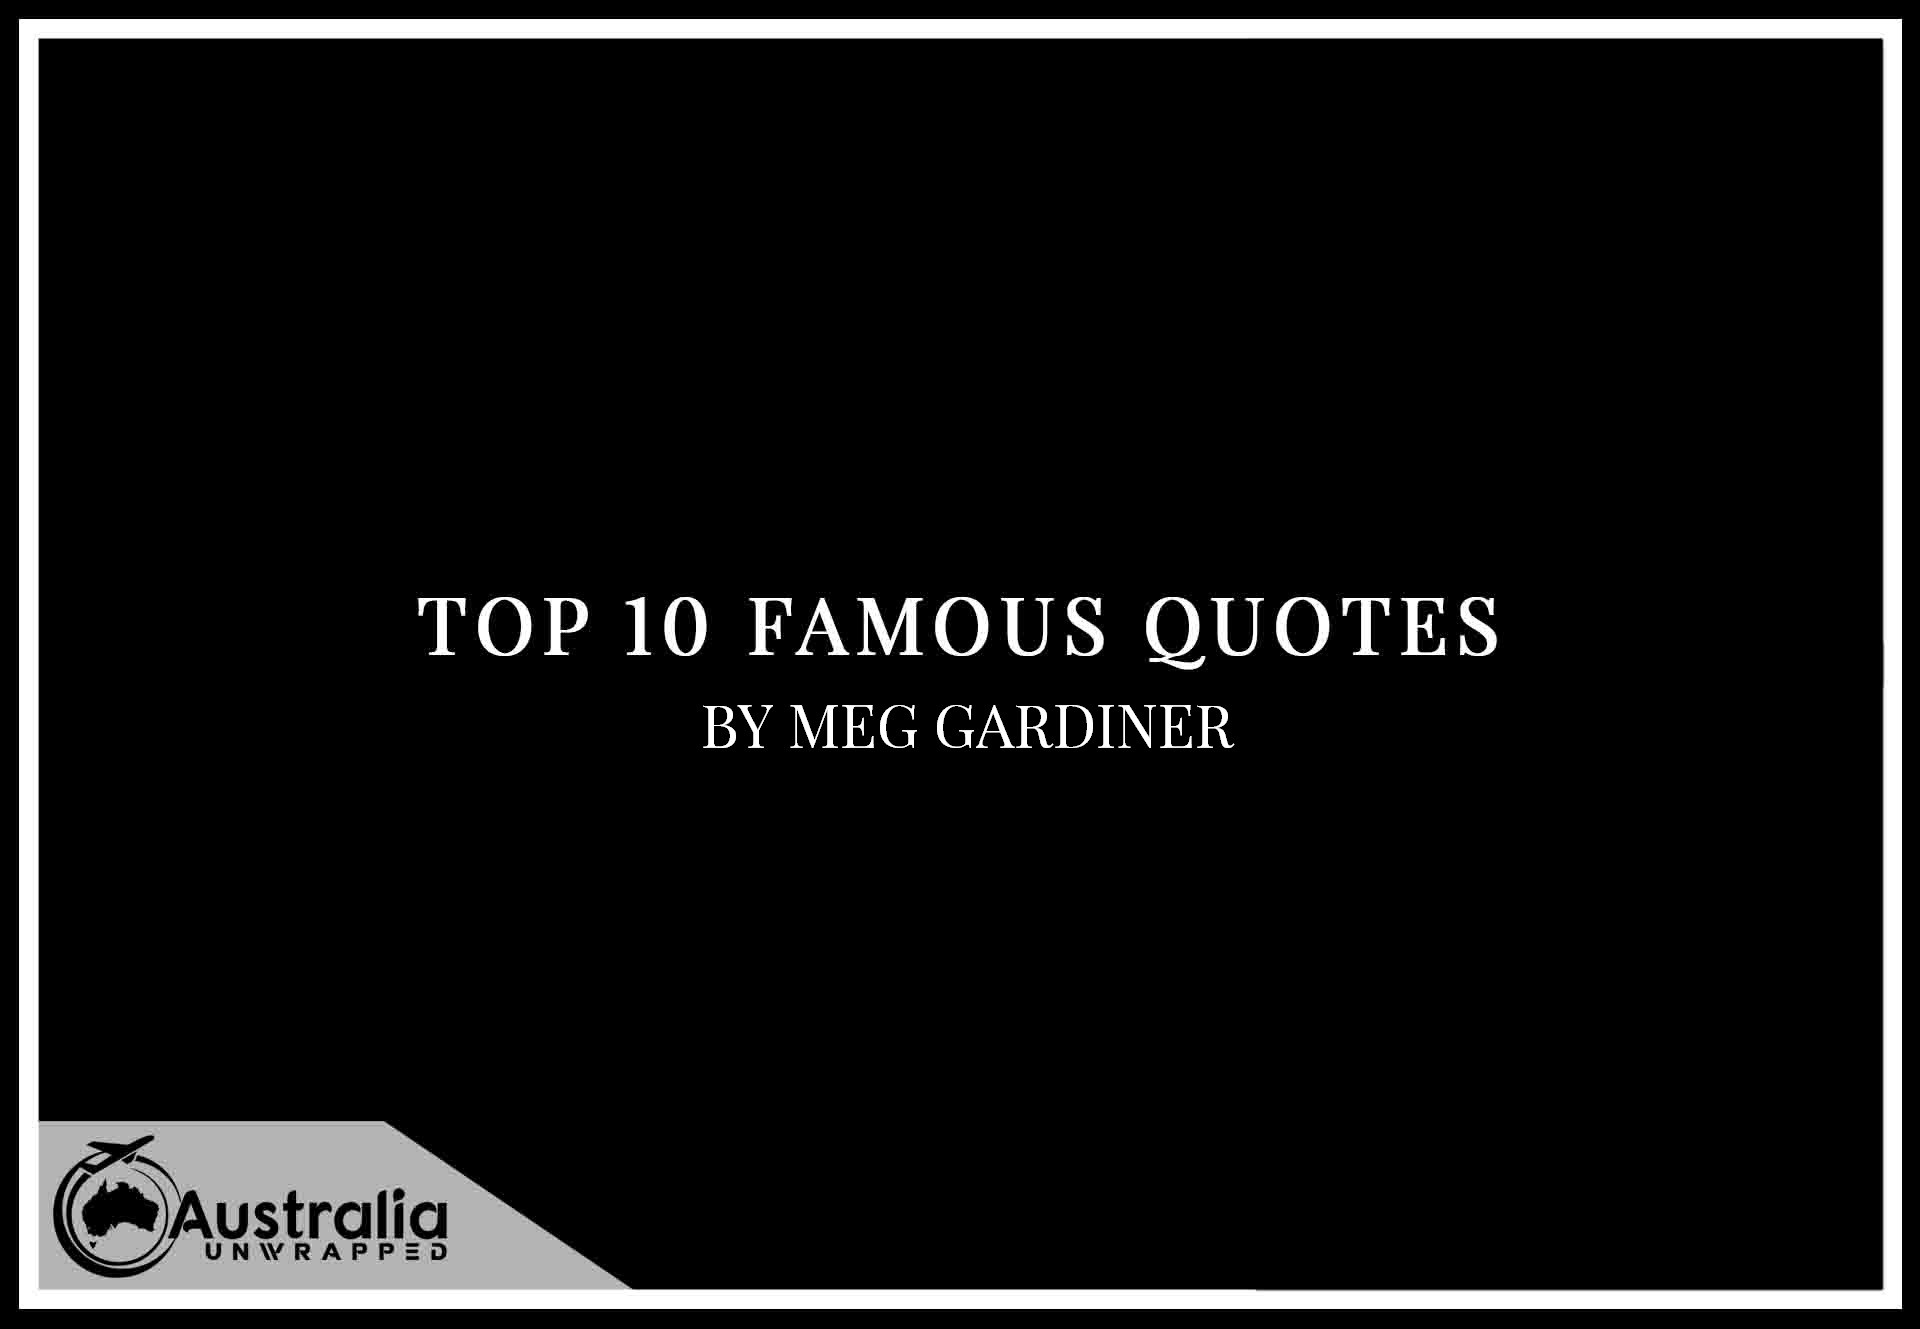 Top 10 Famous Quotes by Author Meg Gardiner